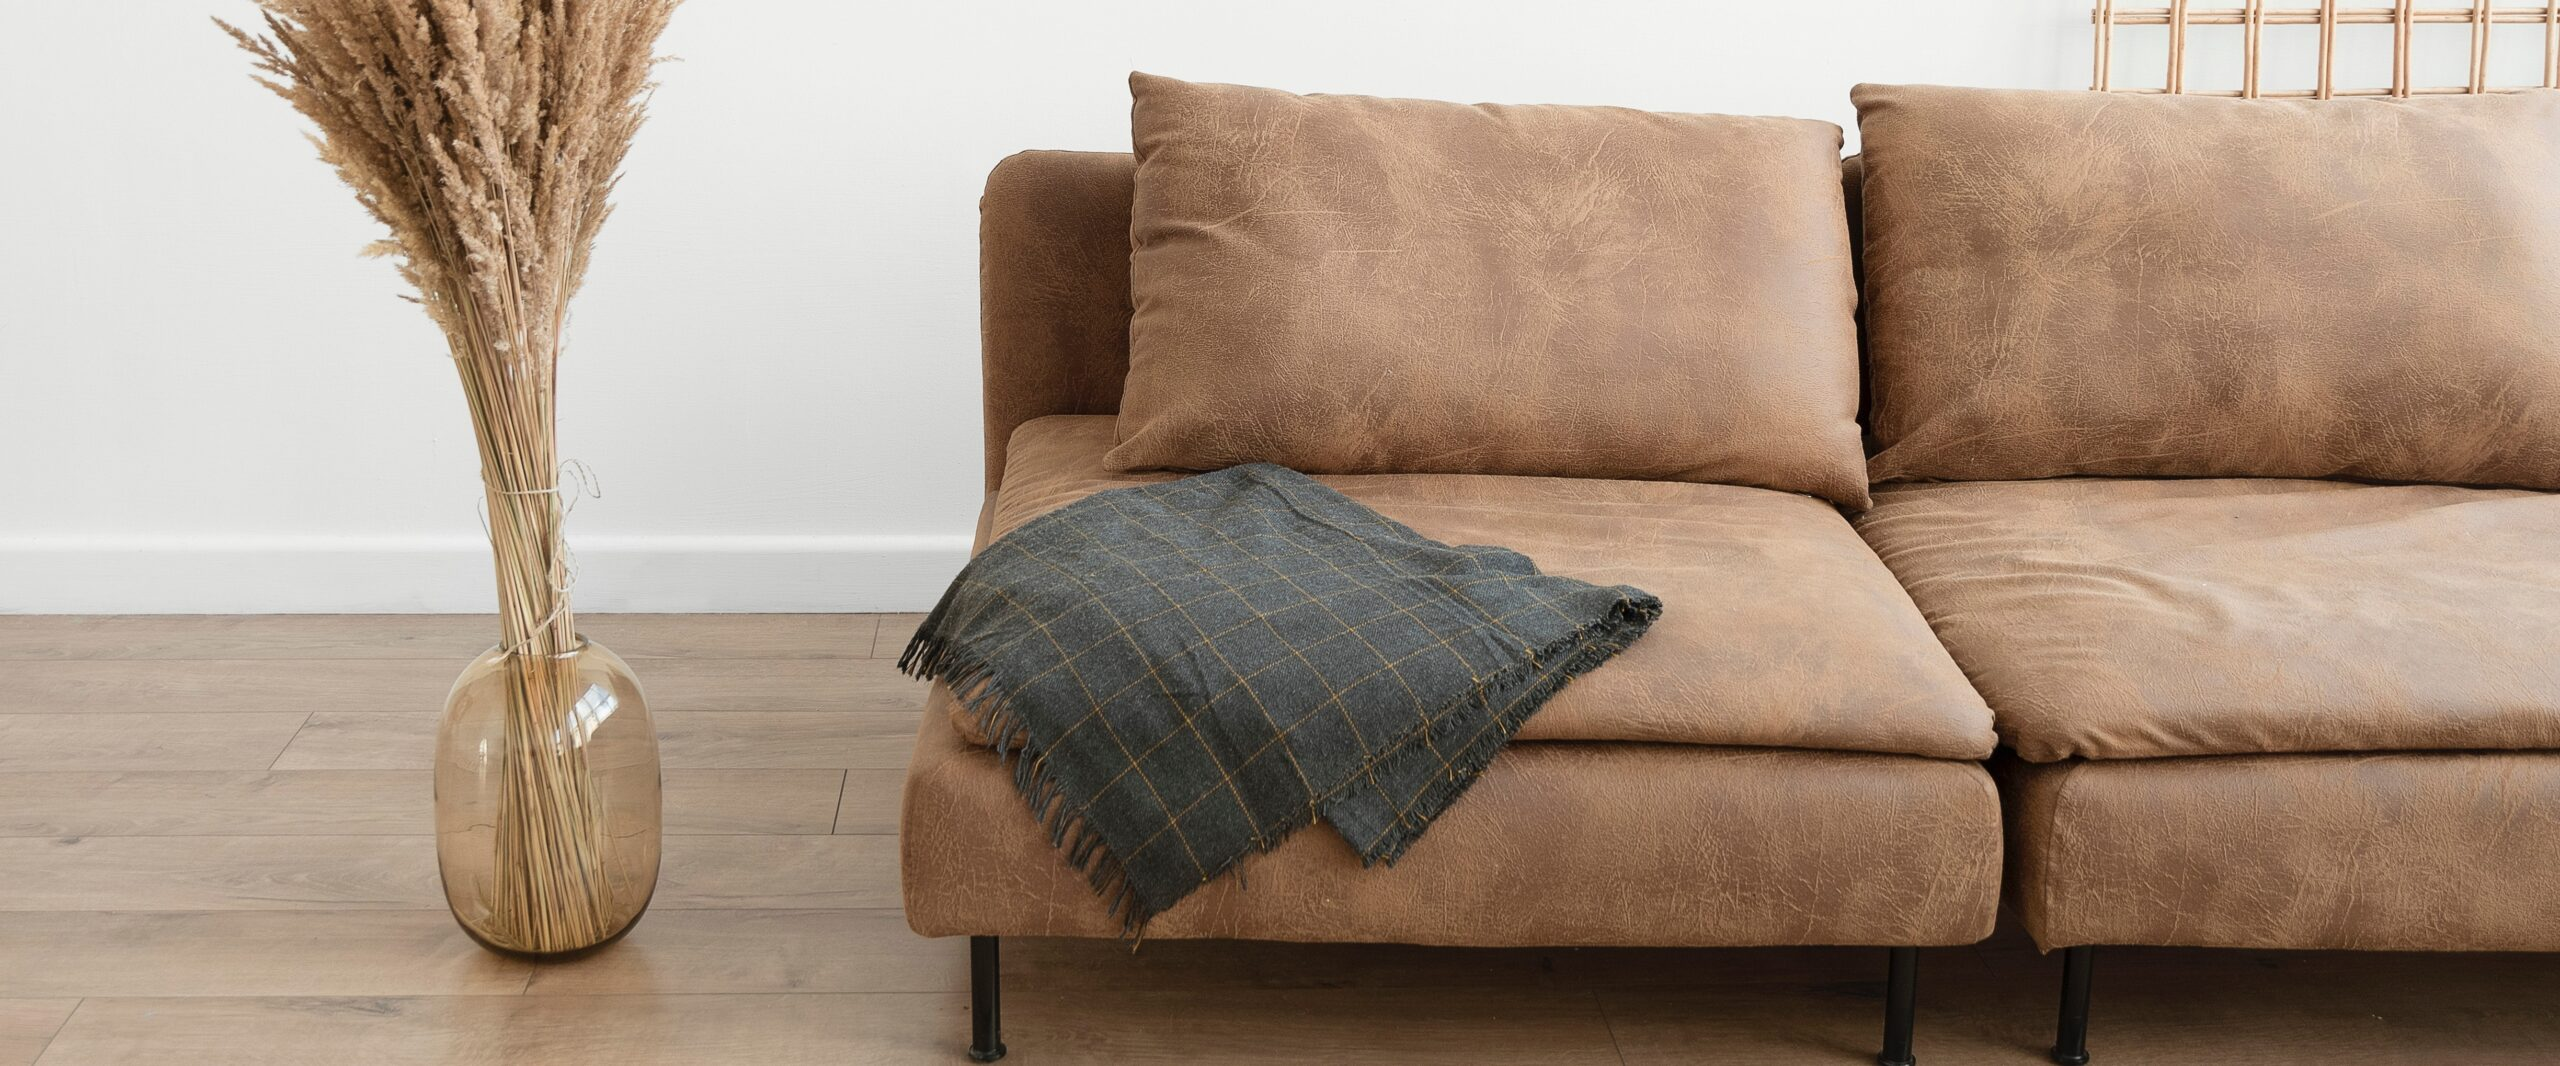 Tips to Keep Your Upholstery Clean